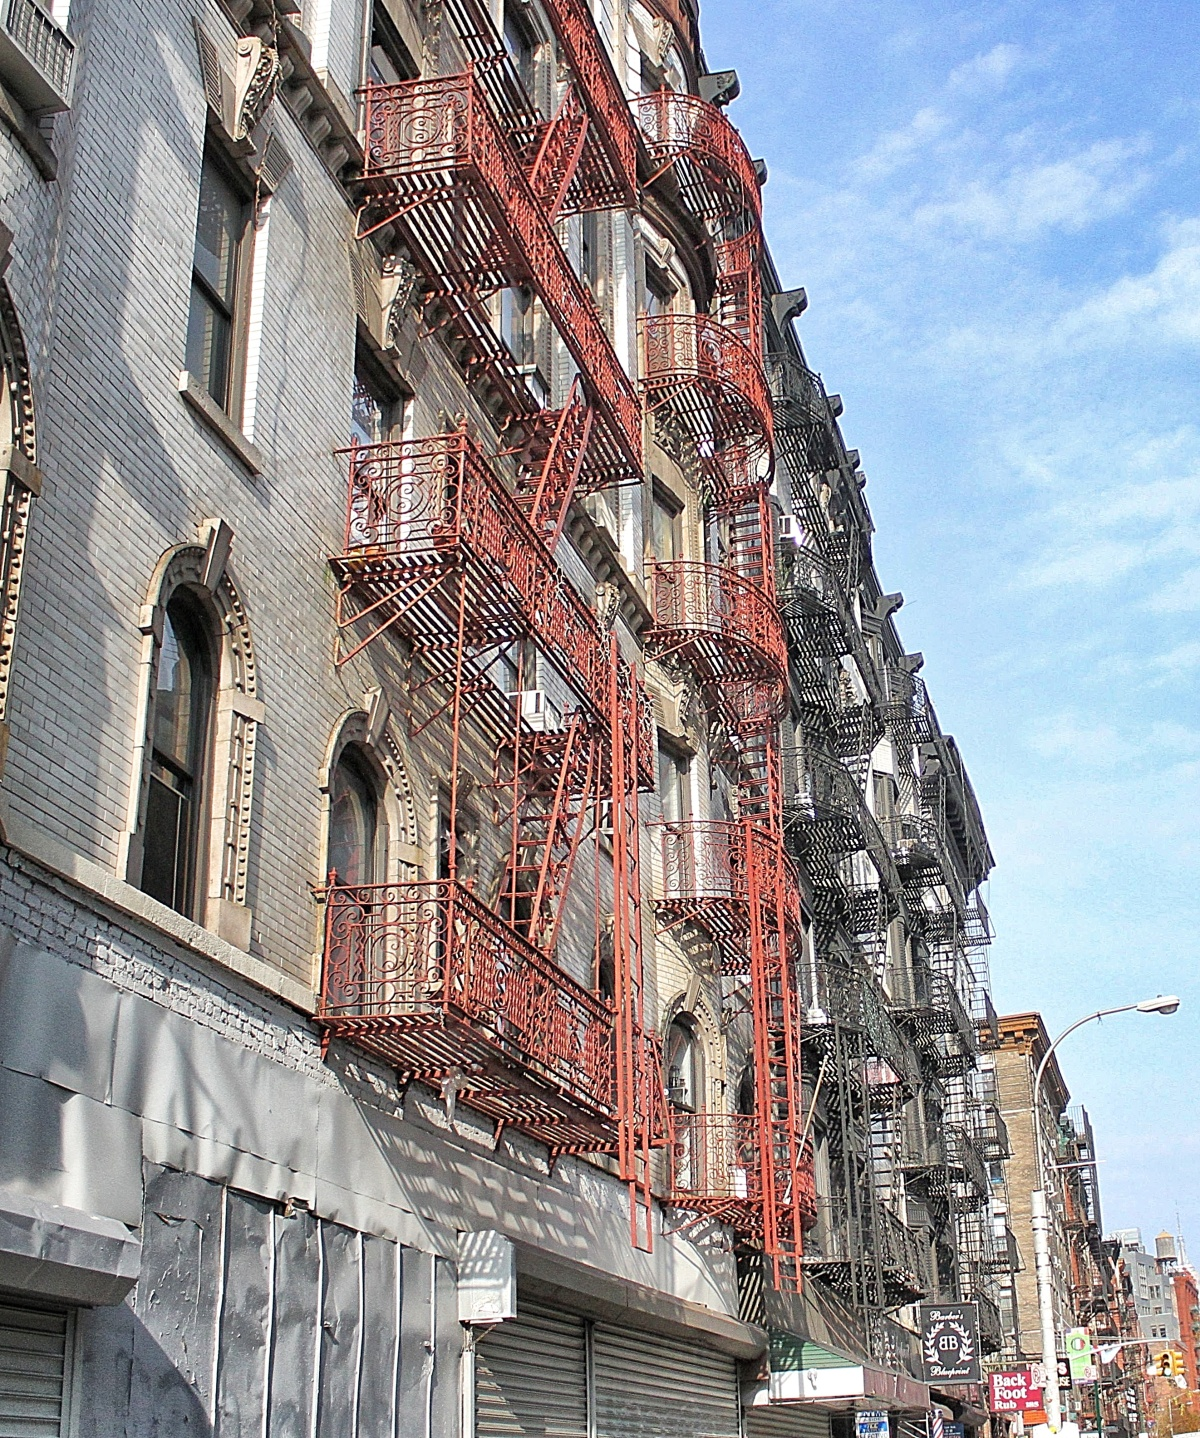 Fire escapes on the outside walls of 19th century builds in Little Italy, New York City